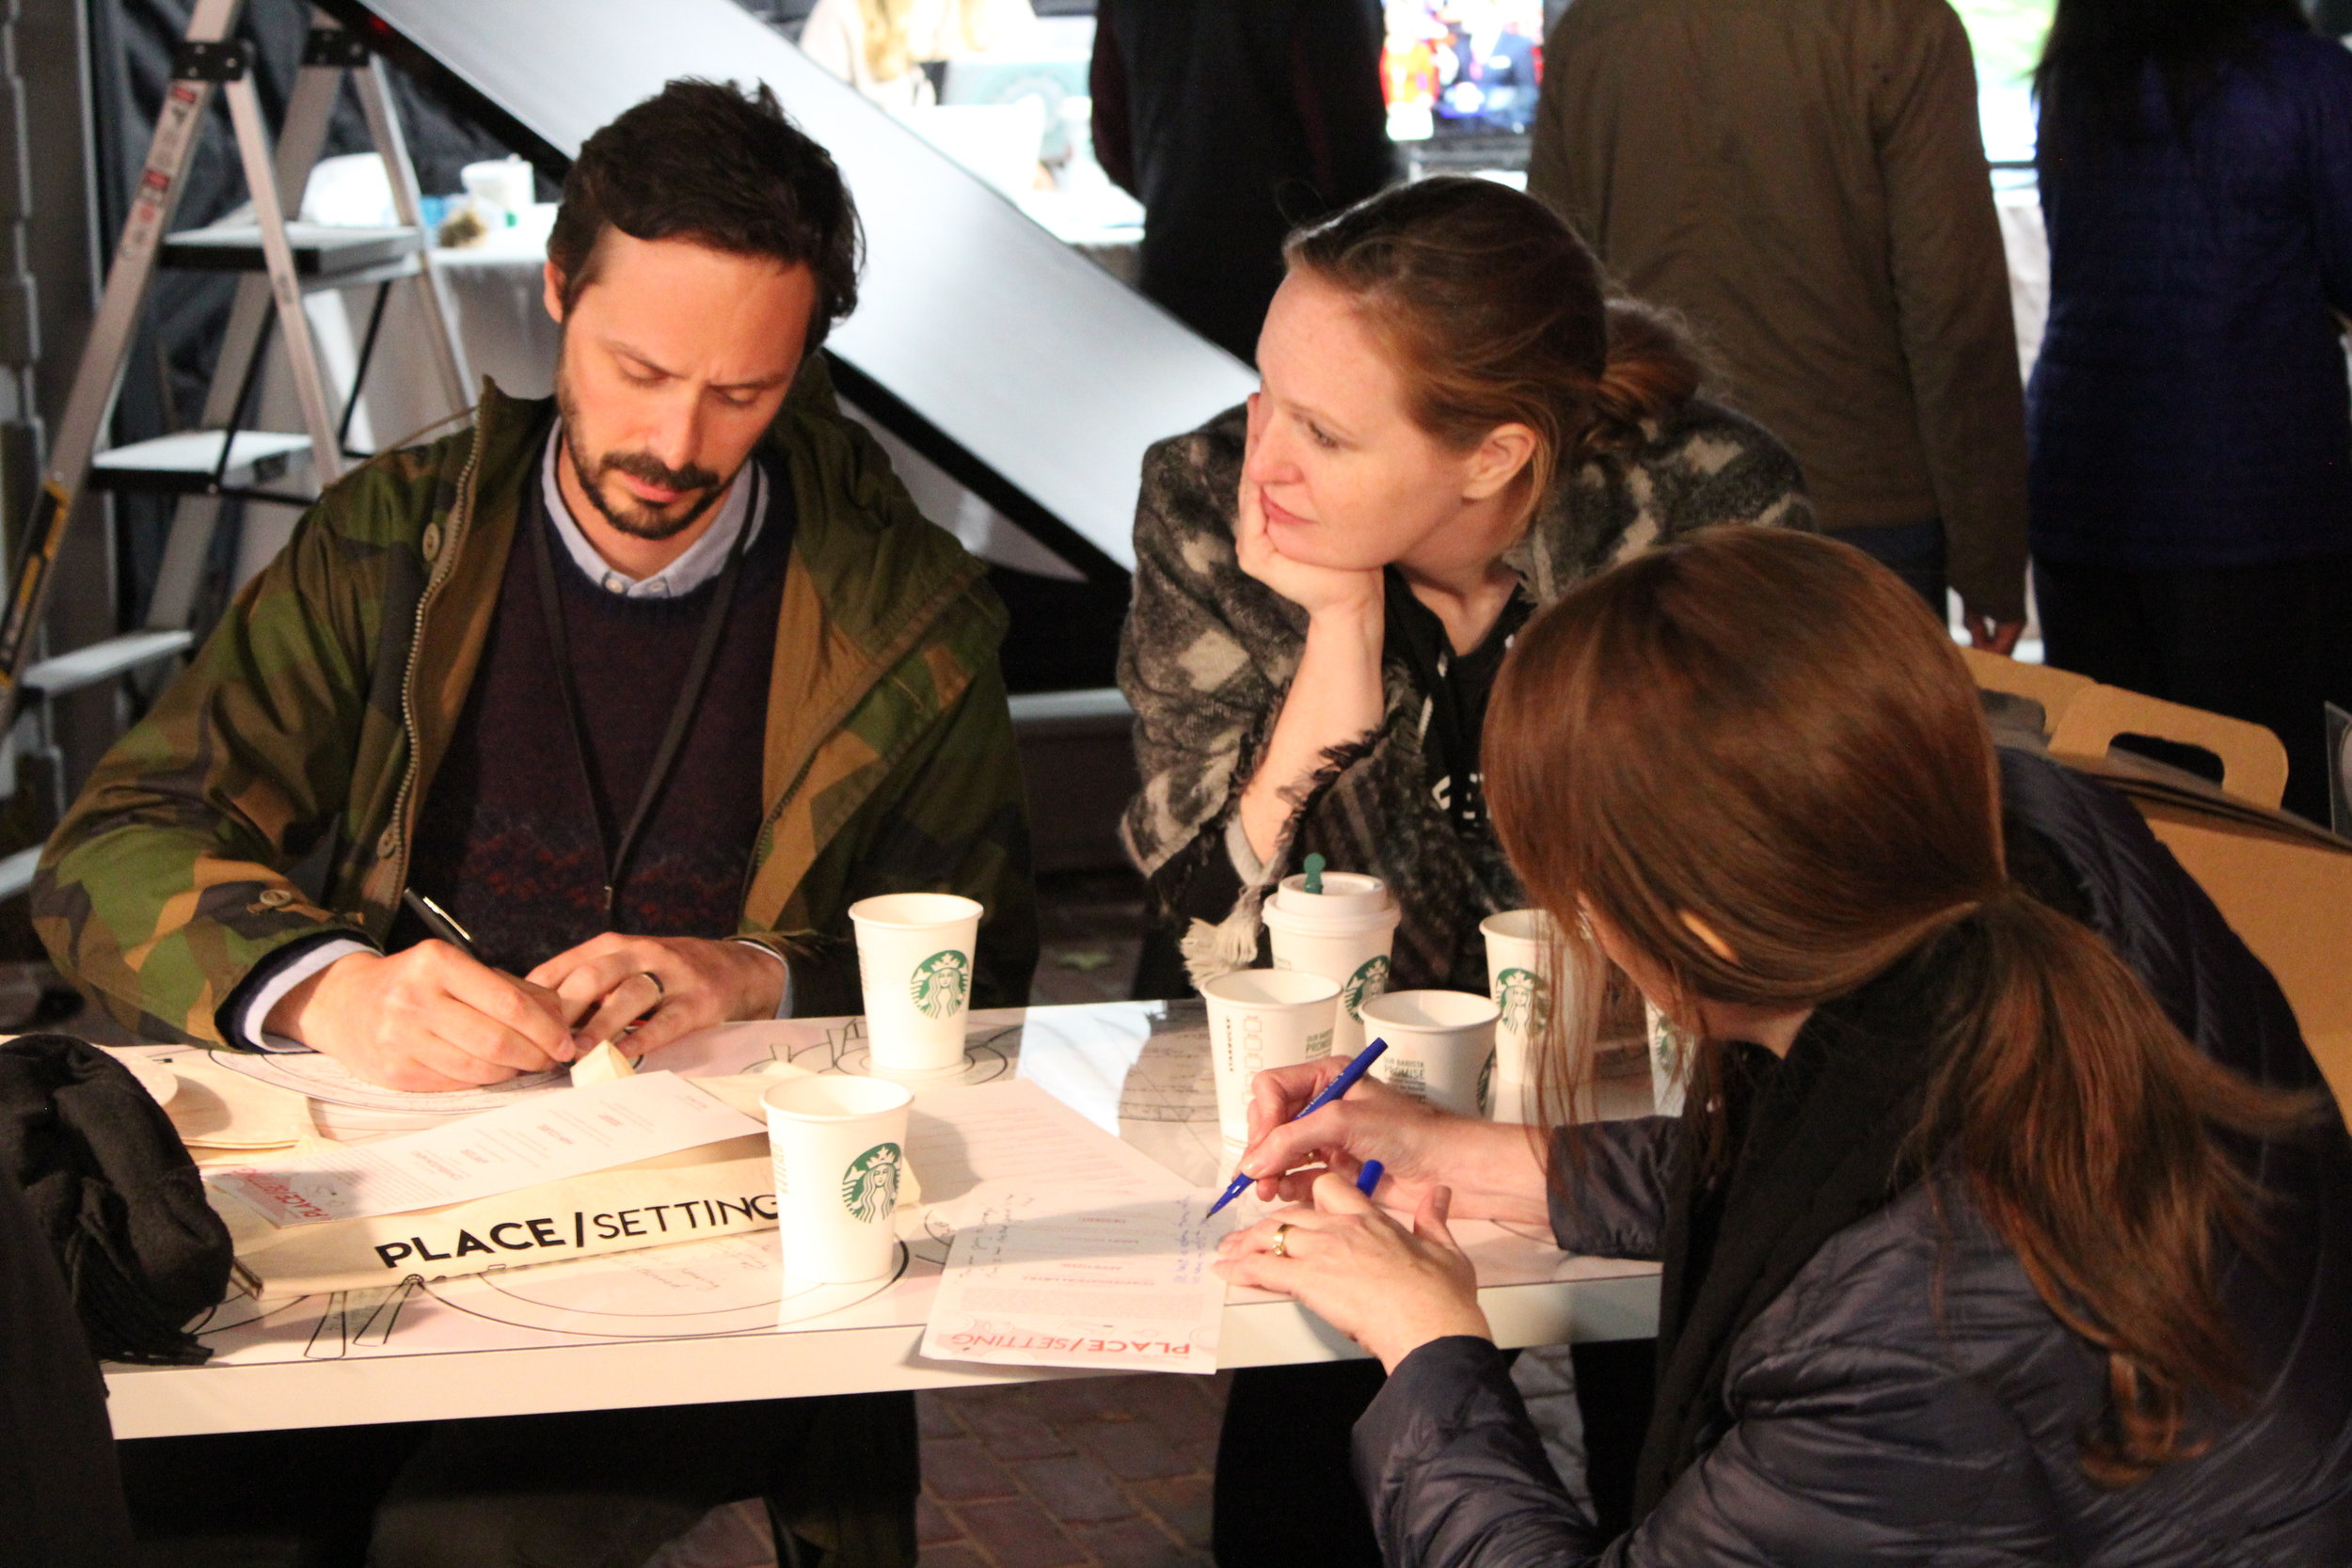 Place/Setting team (l to r: collaborator Gabriel Mugar of IDEO, Anda French, Jenny French) taking notes at a Place/Setting dinner at Hubweek, Boston, 2017